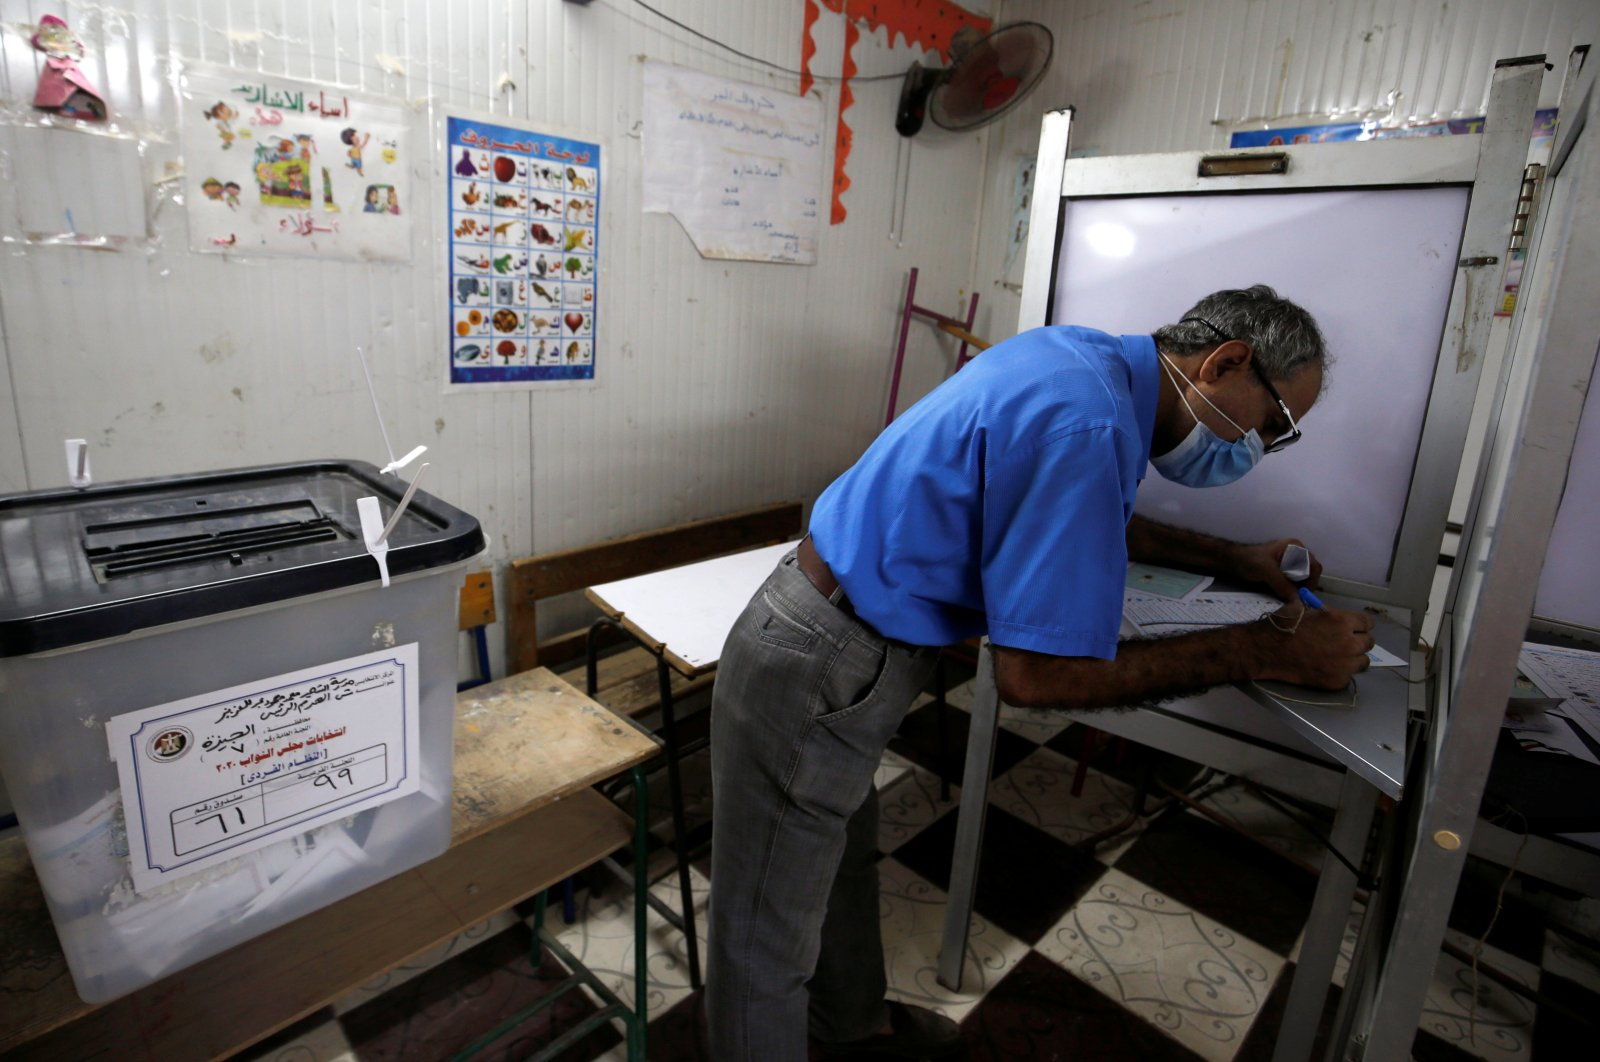 A man wearing a protective mask casts his ballot at a school used as a polling station, Giza, Oct. 25, 2020. (REUTERS Photo)